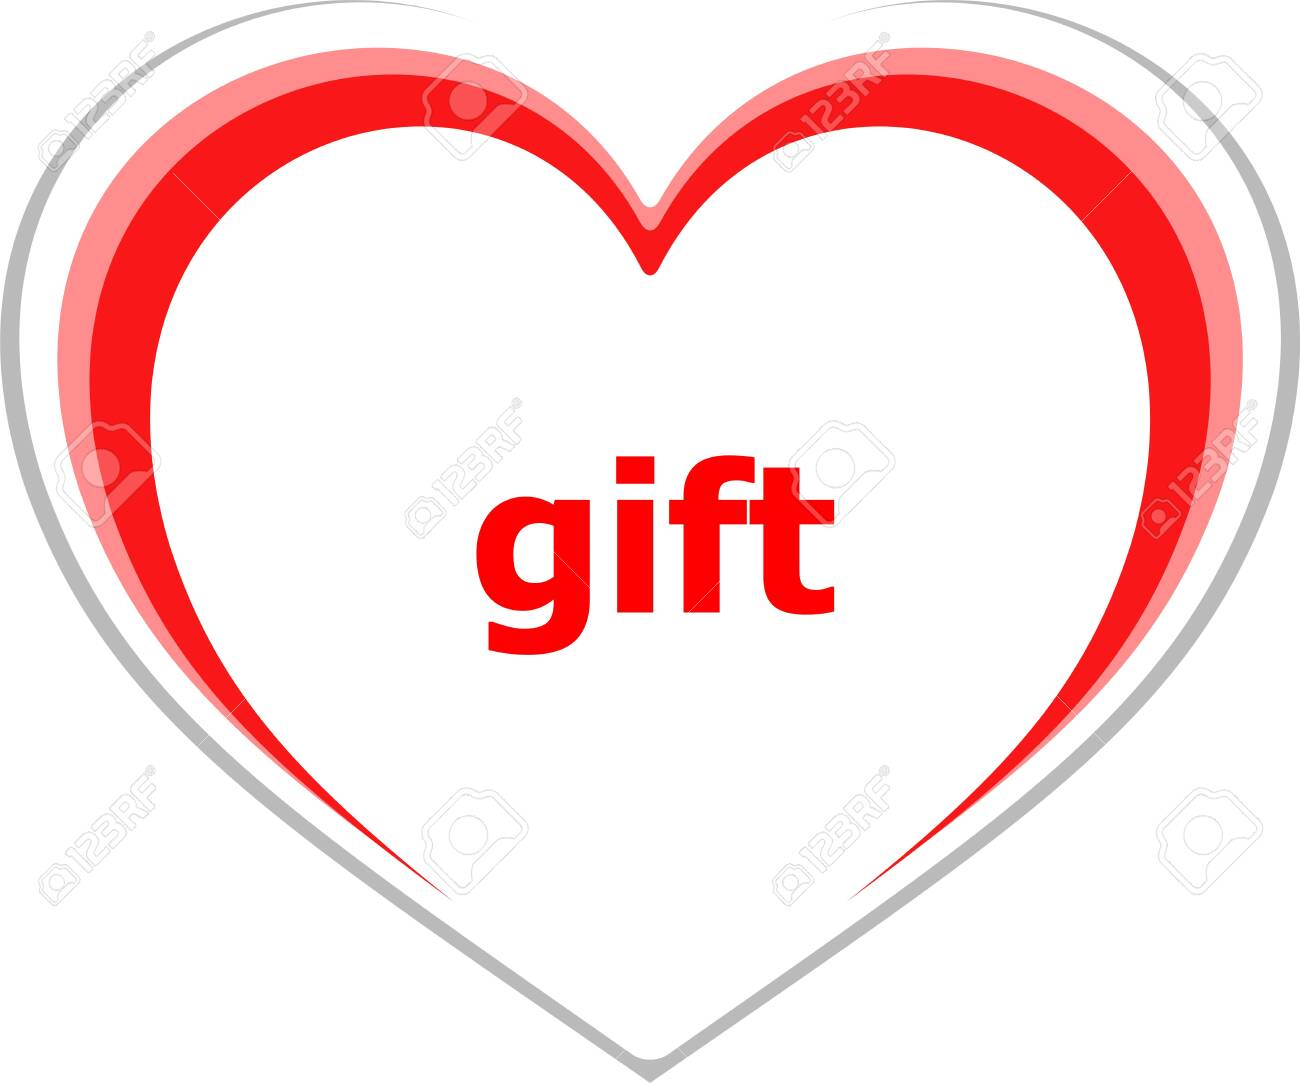 Holiday concept gift word on love heart stock photo picture and holiday concept gift word on love heart stock photo 26169674 negle Gallery